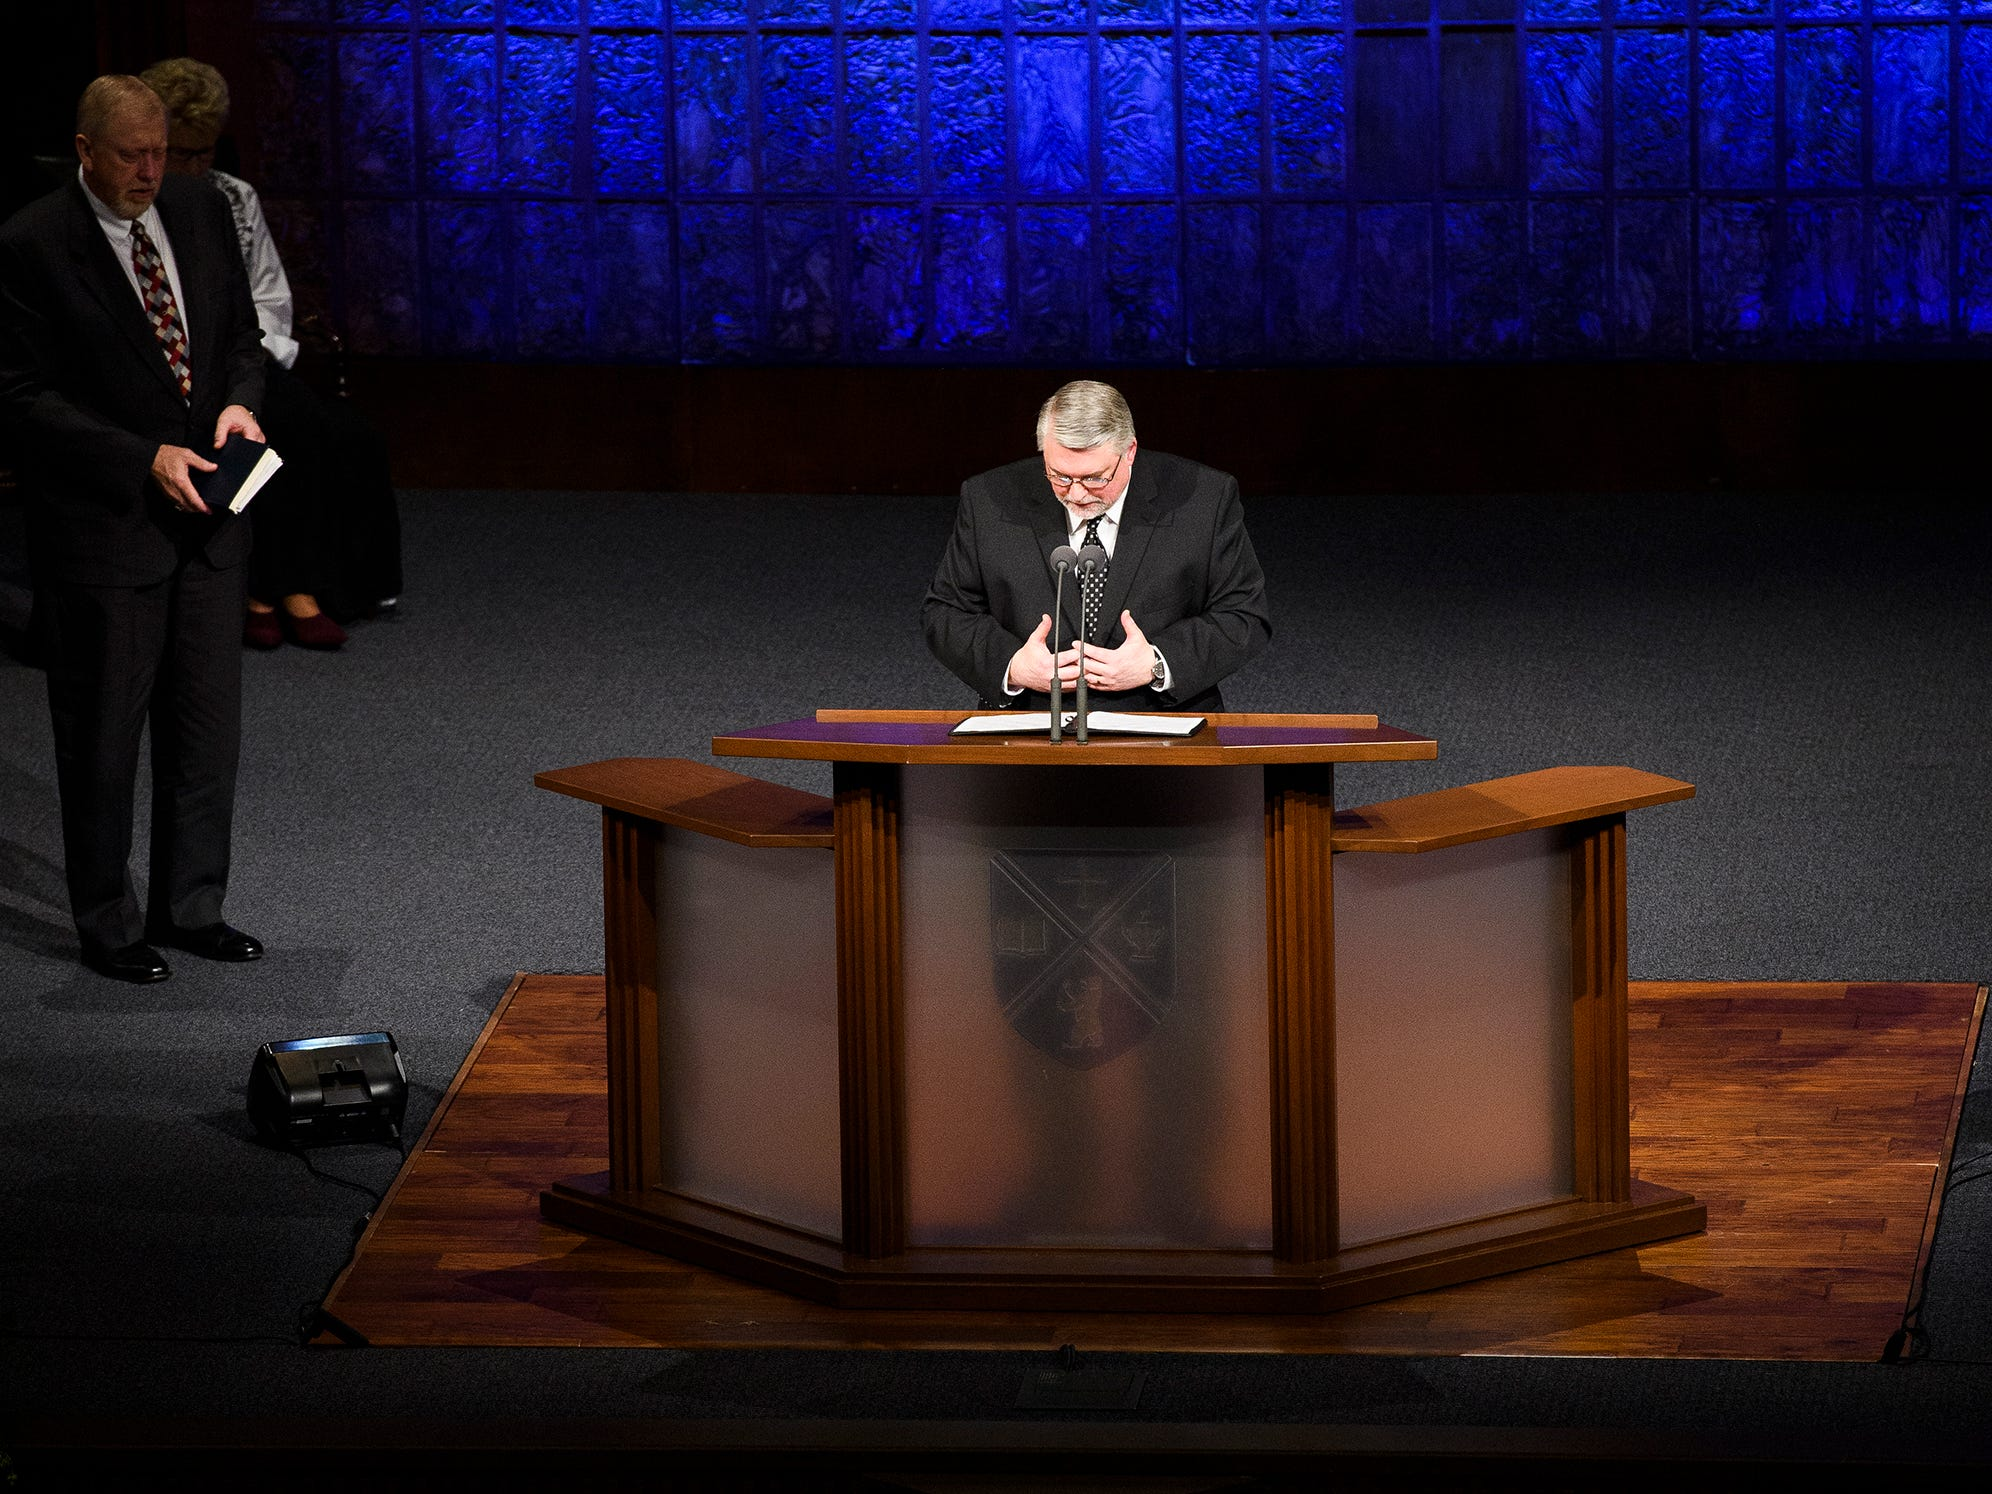 Pastor Phil Gerard leads a prayer during the funeral service for Beneth Peters Jones at Bob Jones University on Wednesday, Feb. 6, 2019.